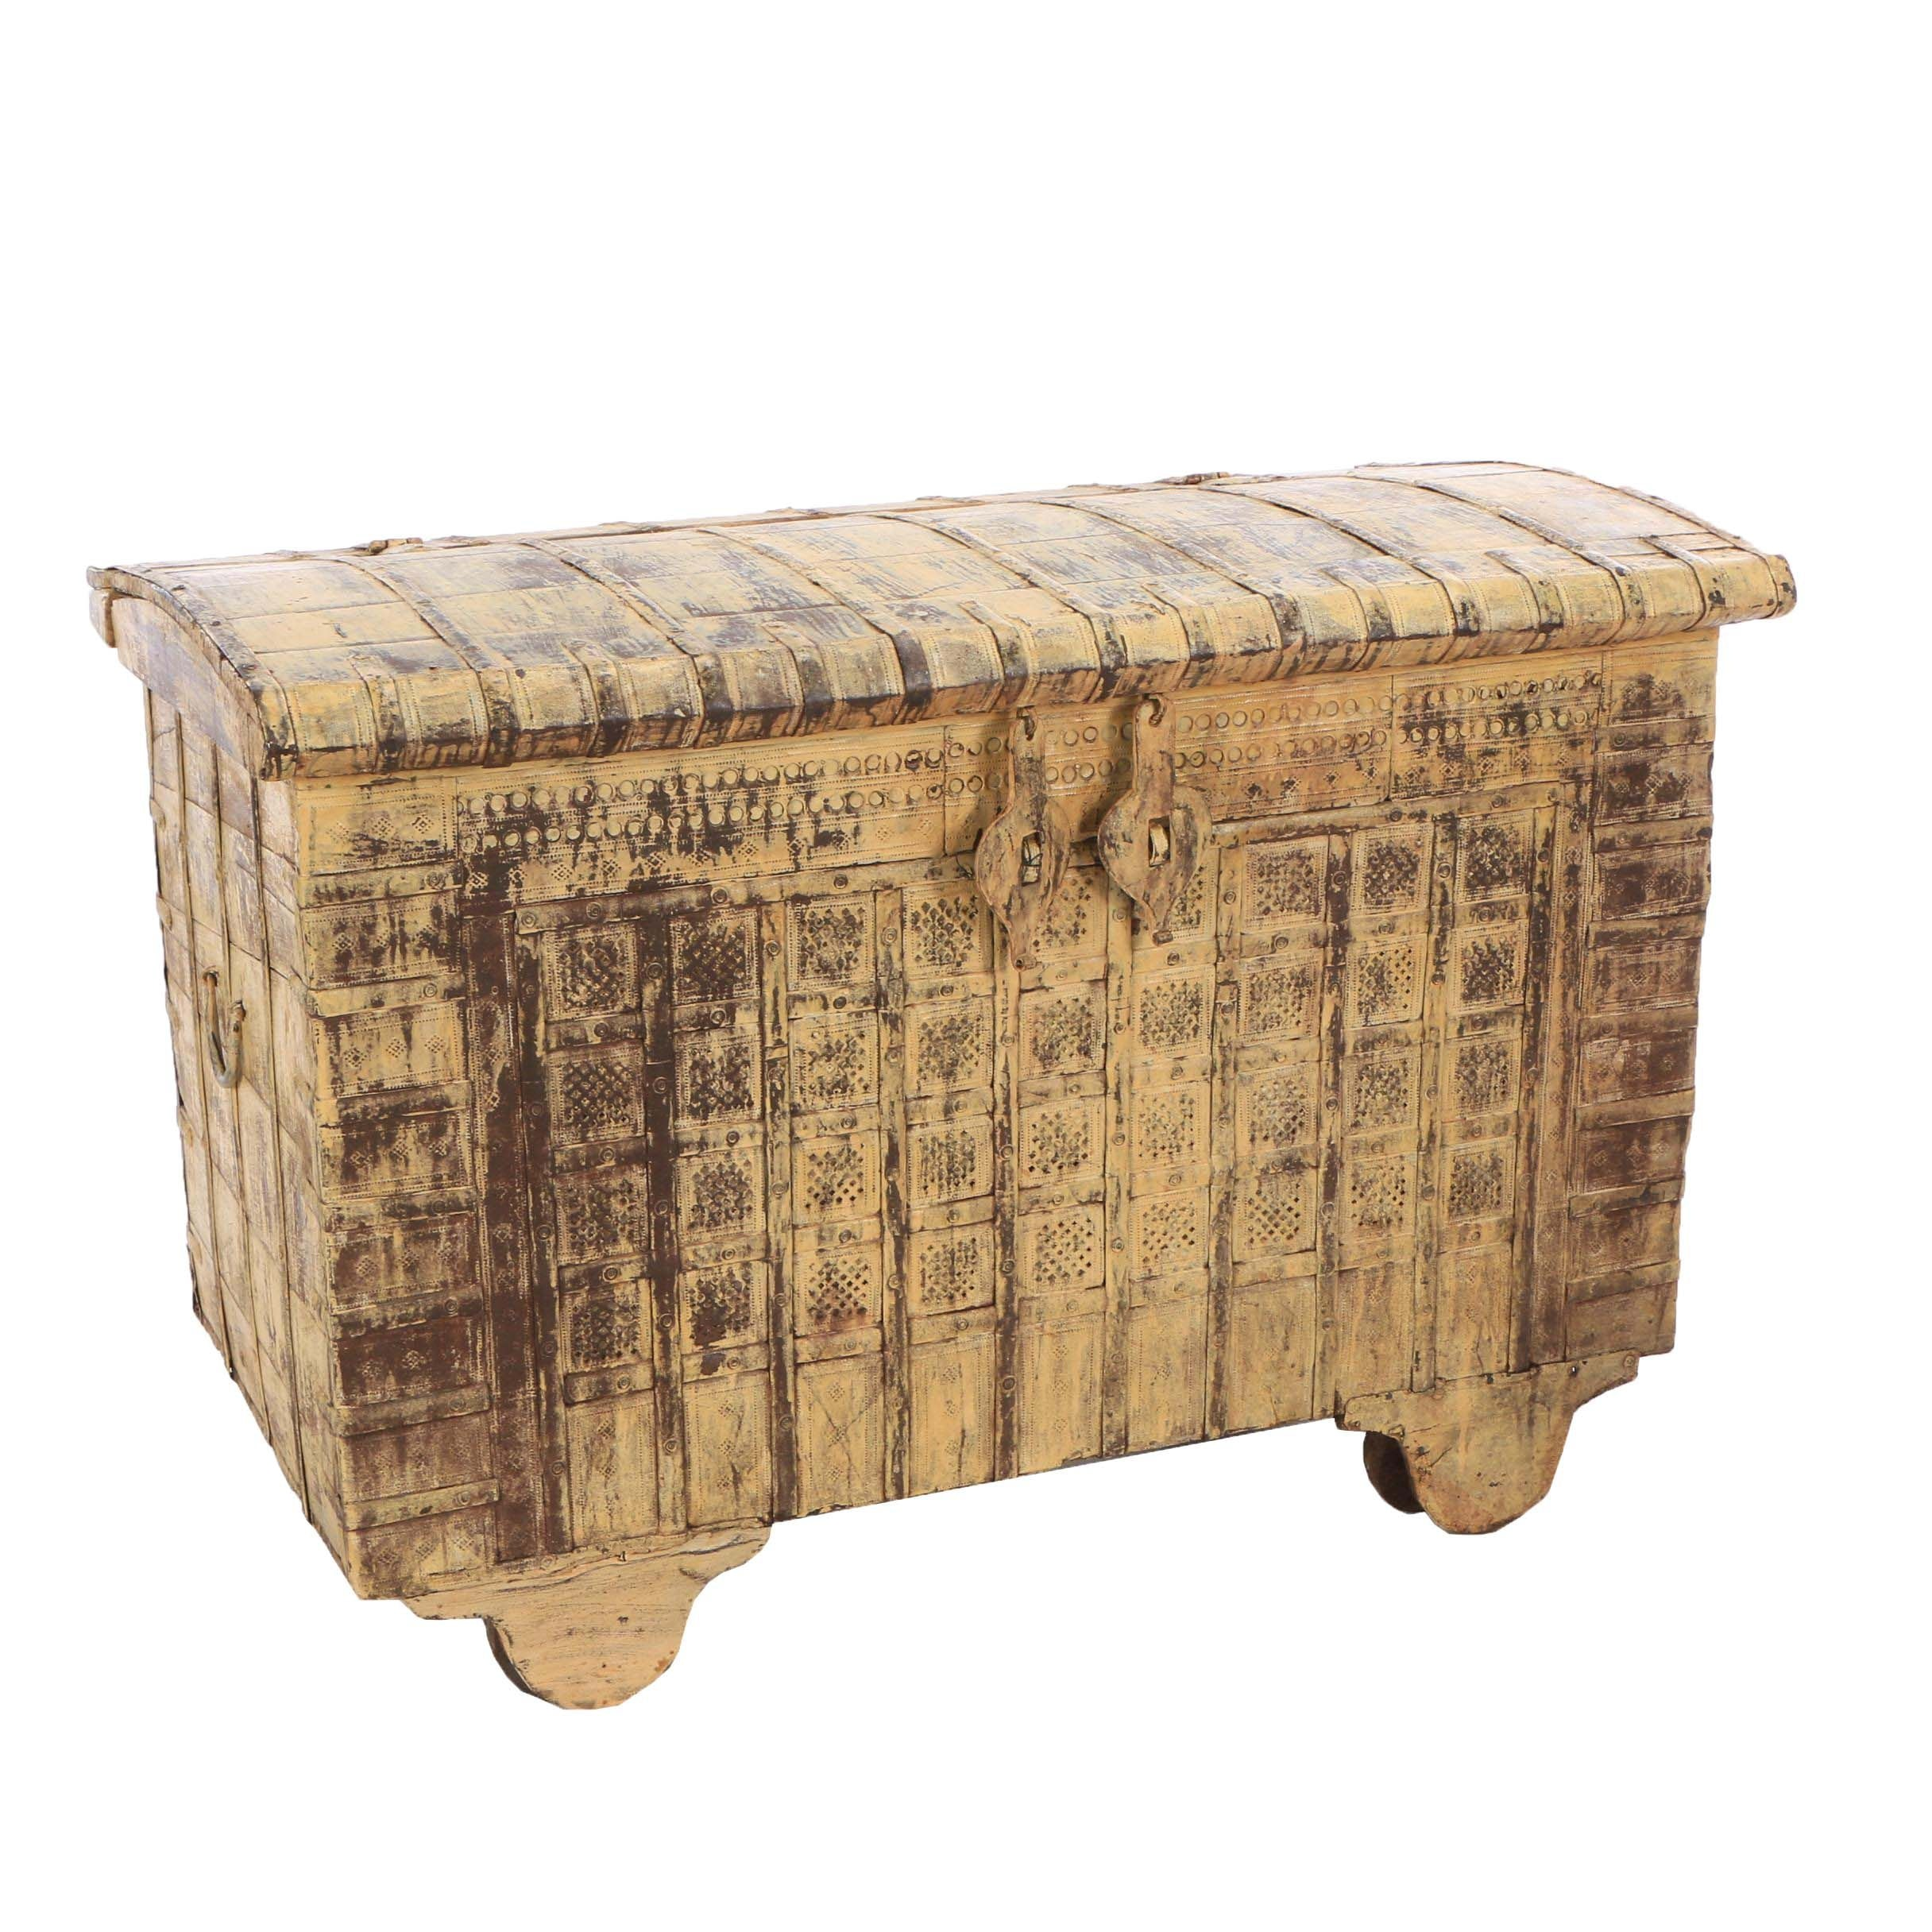 Indian Painted Metal Dowry Chest on Wheels, Mid-20th Century